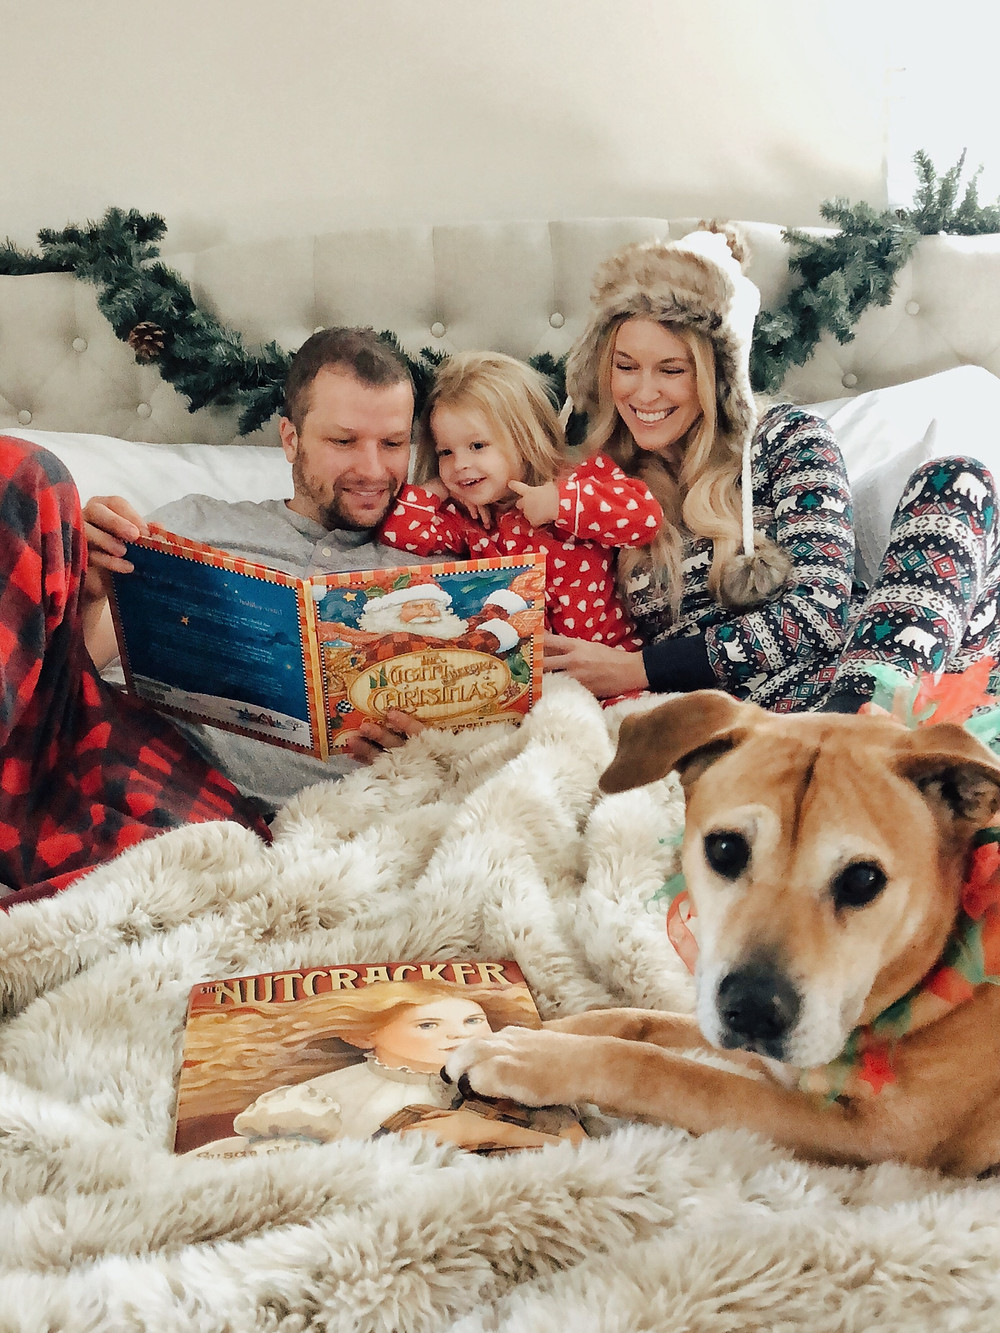 Family reads The Night Before Christmas snuggled in bed wearing coordinating Christmas pajamas.